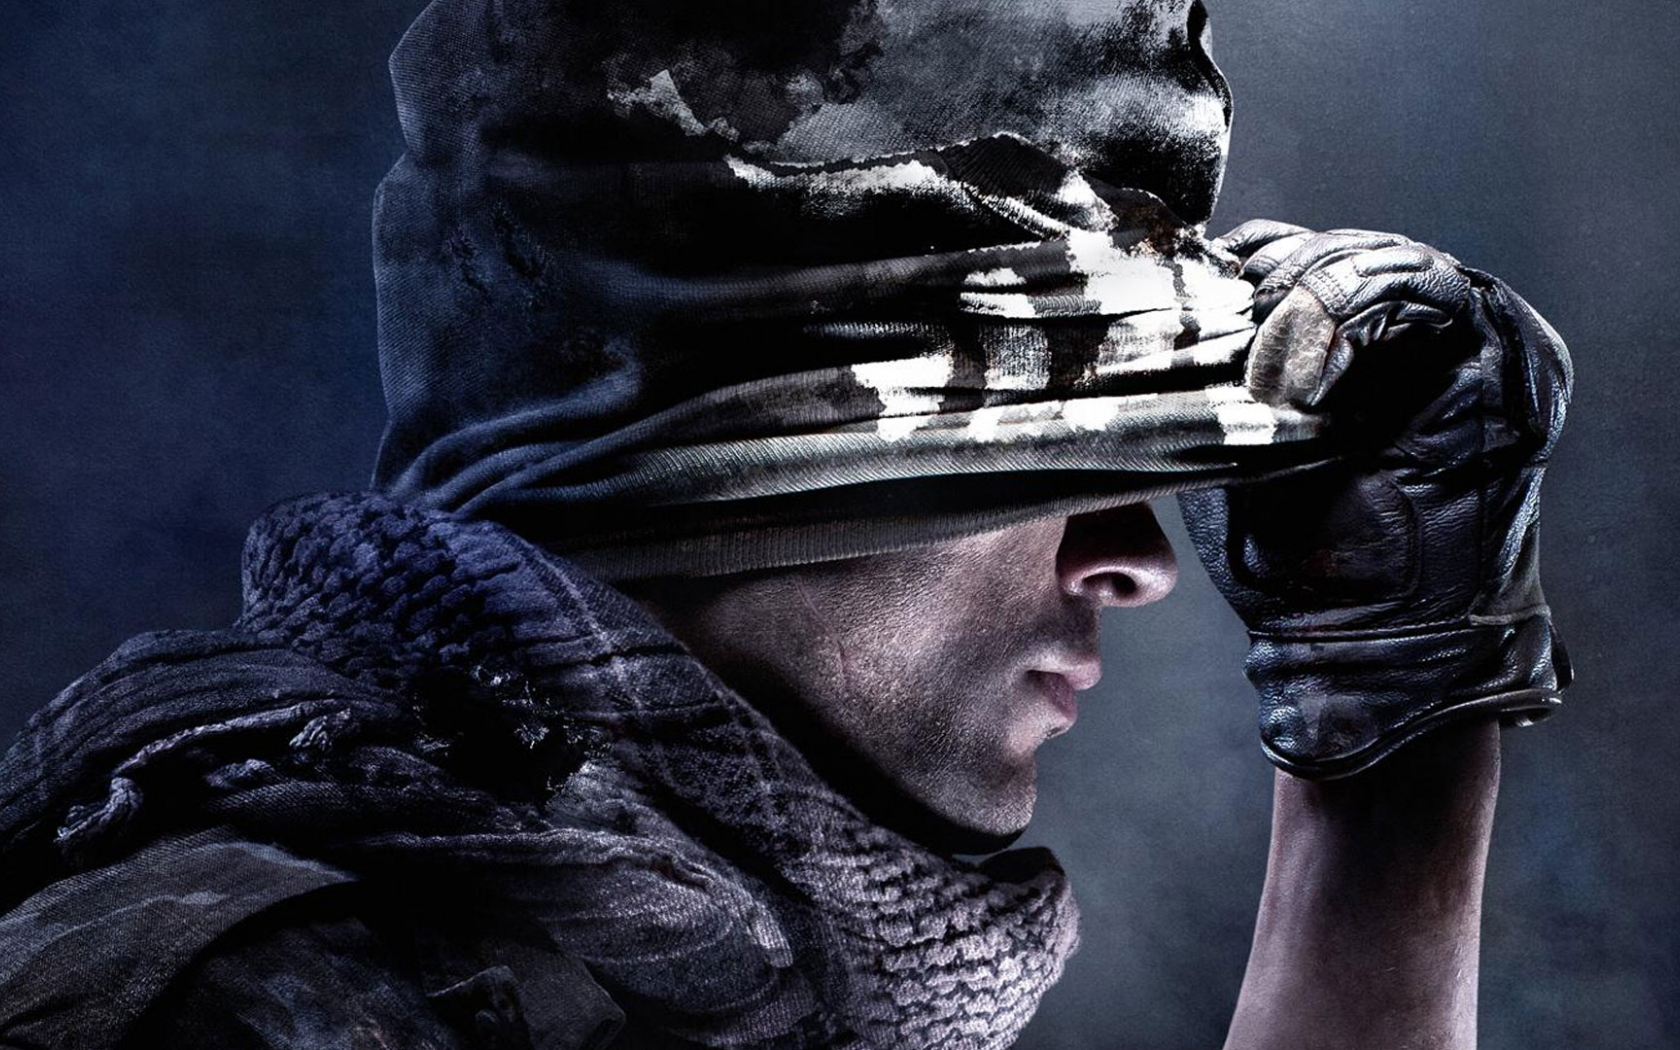 Free Download Pics Photos Call Of Duty Ghost 1080p Wallpaper